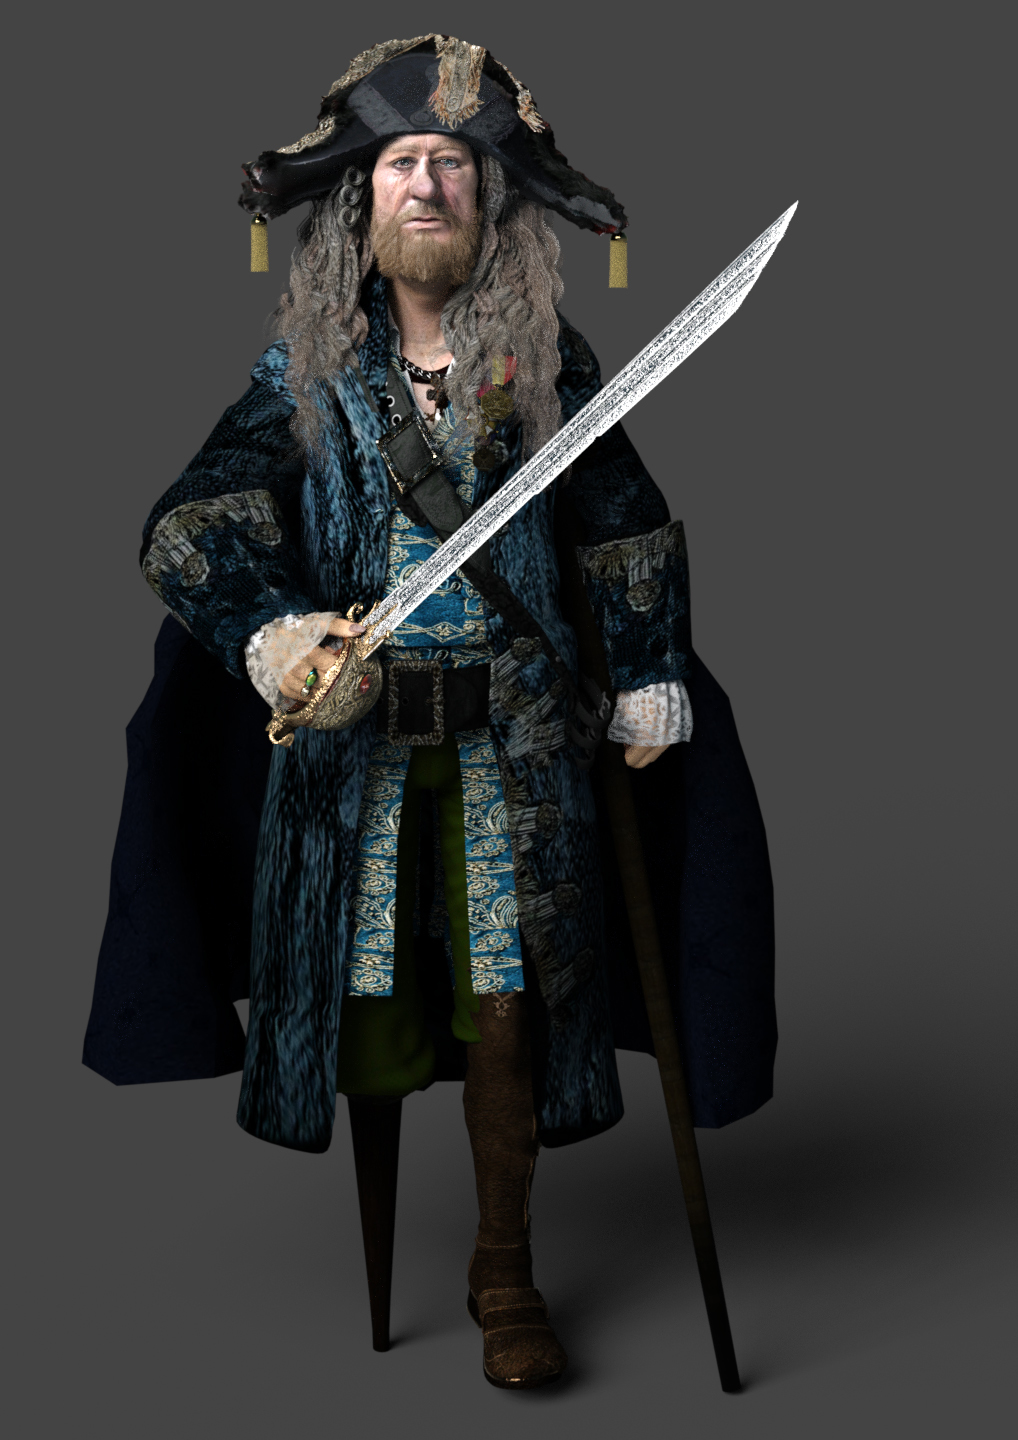 Hector Barbossa with sword of triton PotC5 by Paspu